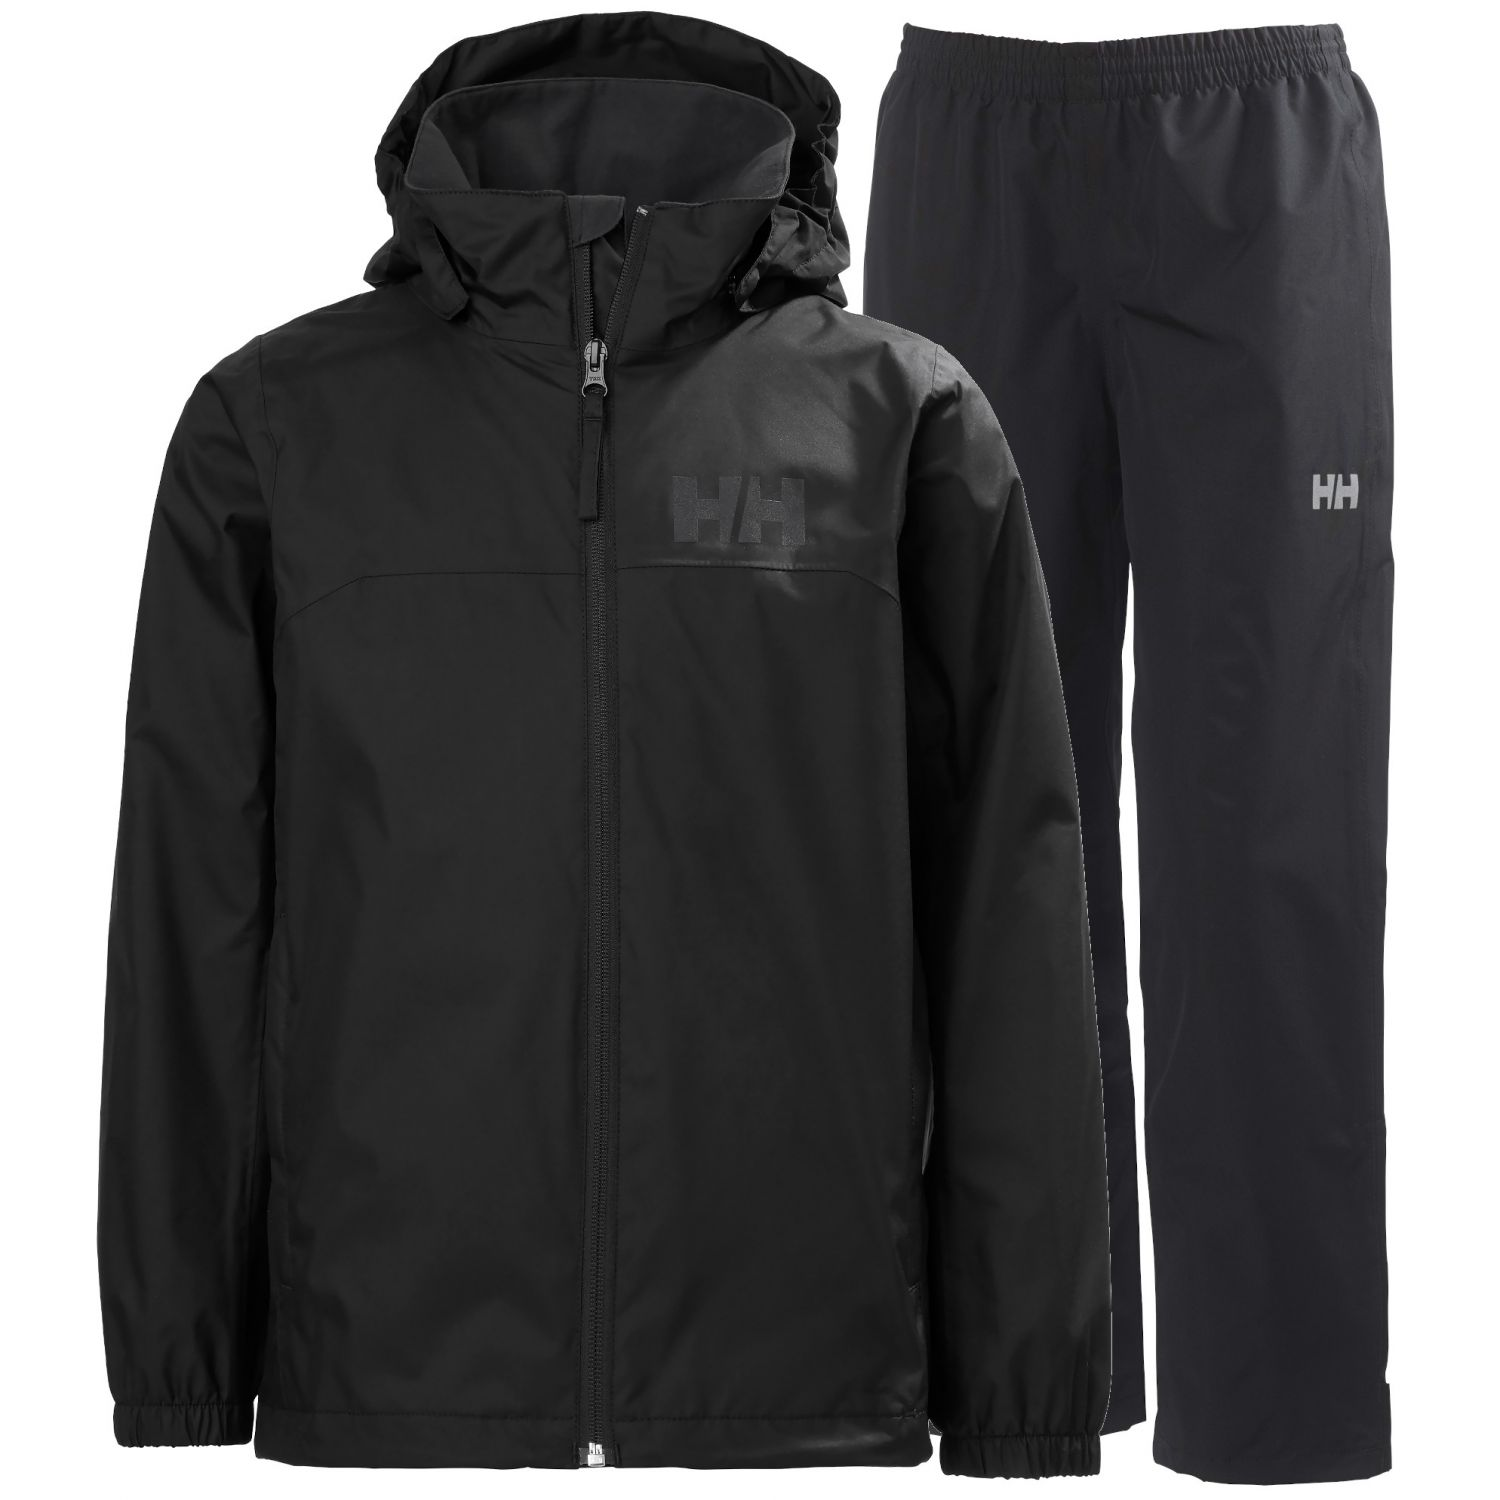 Helly Hansen Urban/Dubliner, junior, black